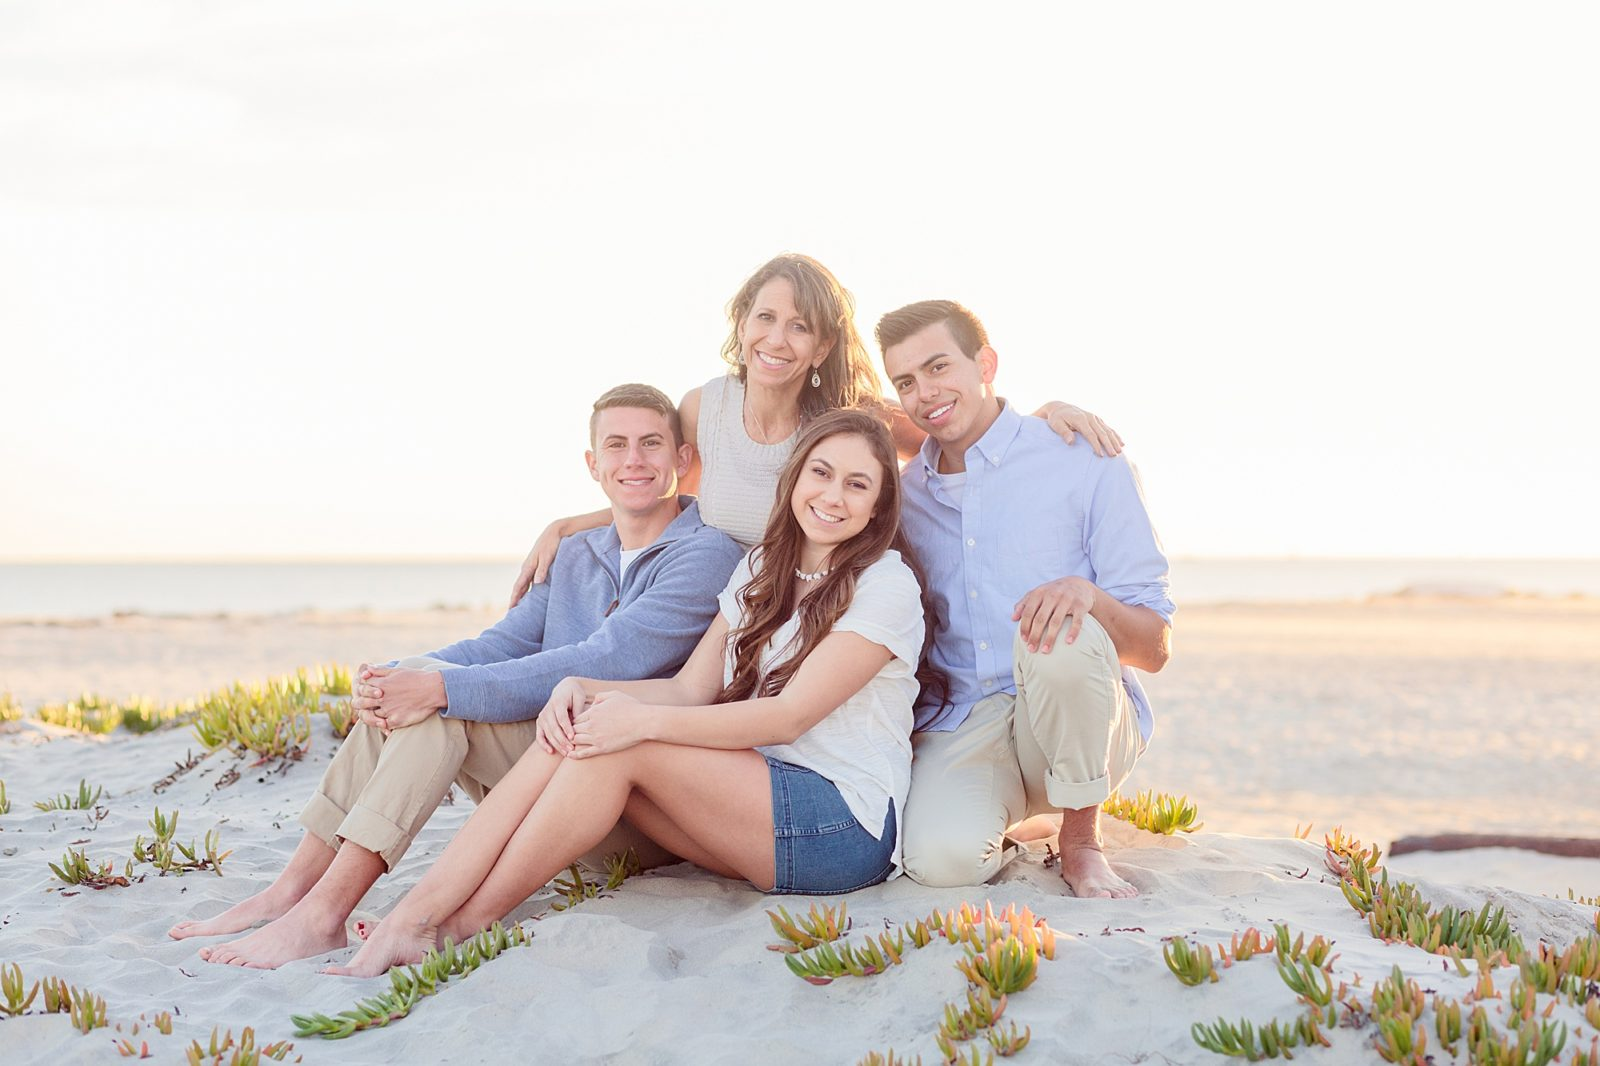 Family Beach Photography | Senior Photography San Diego